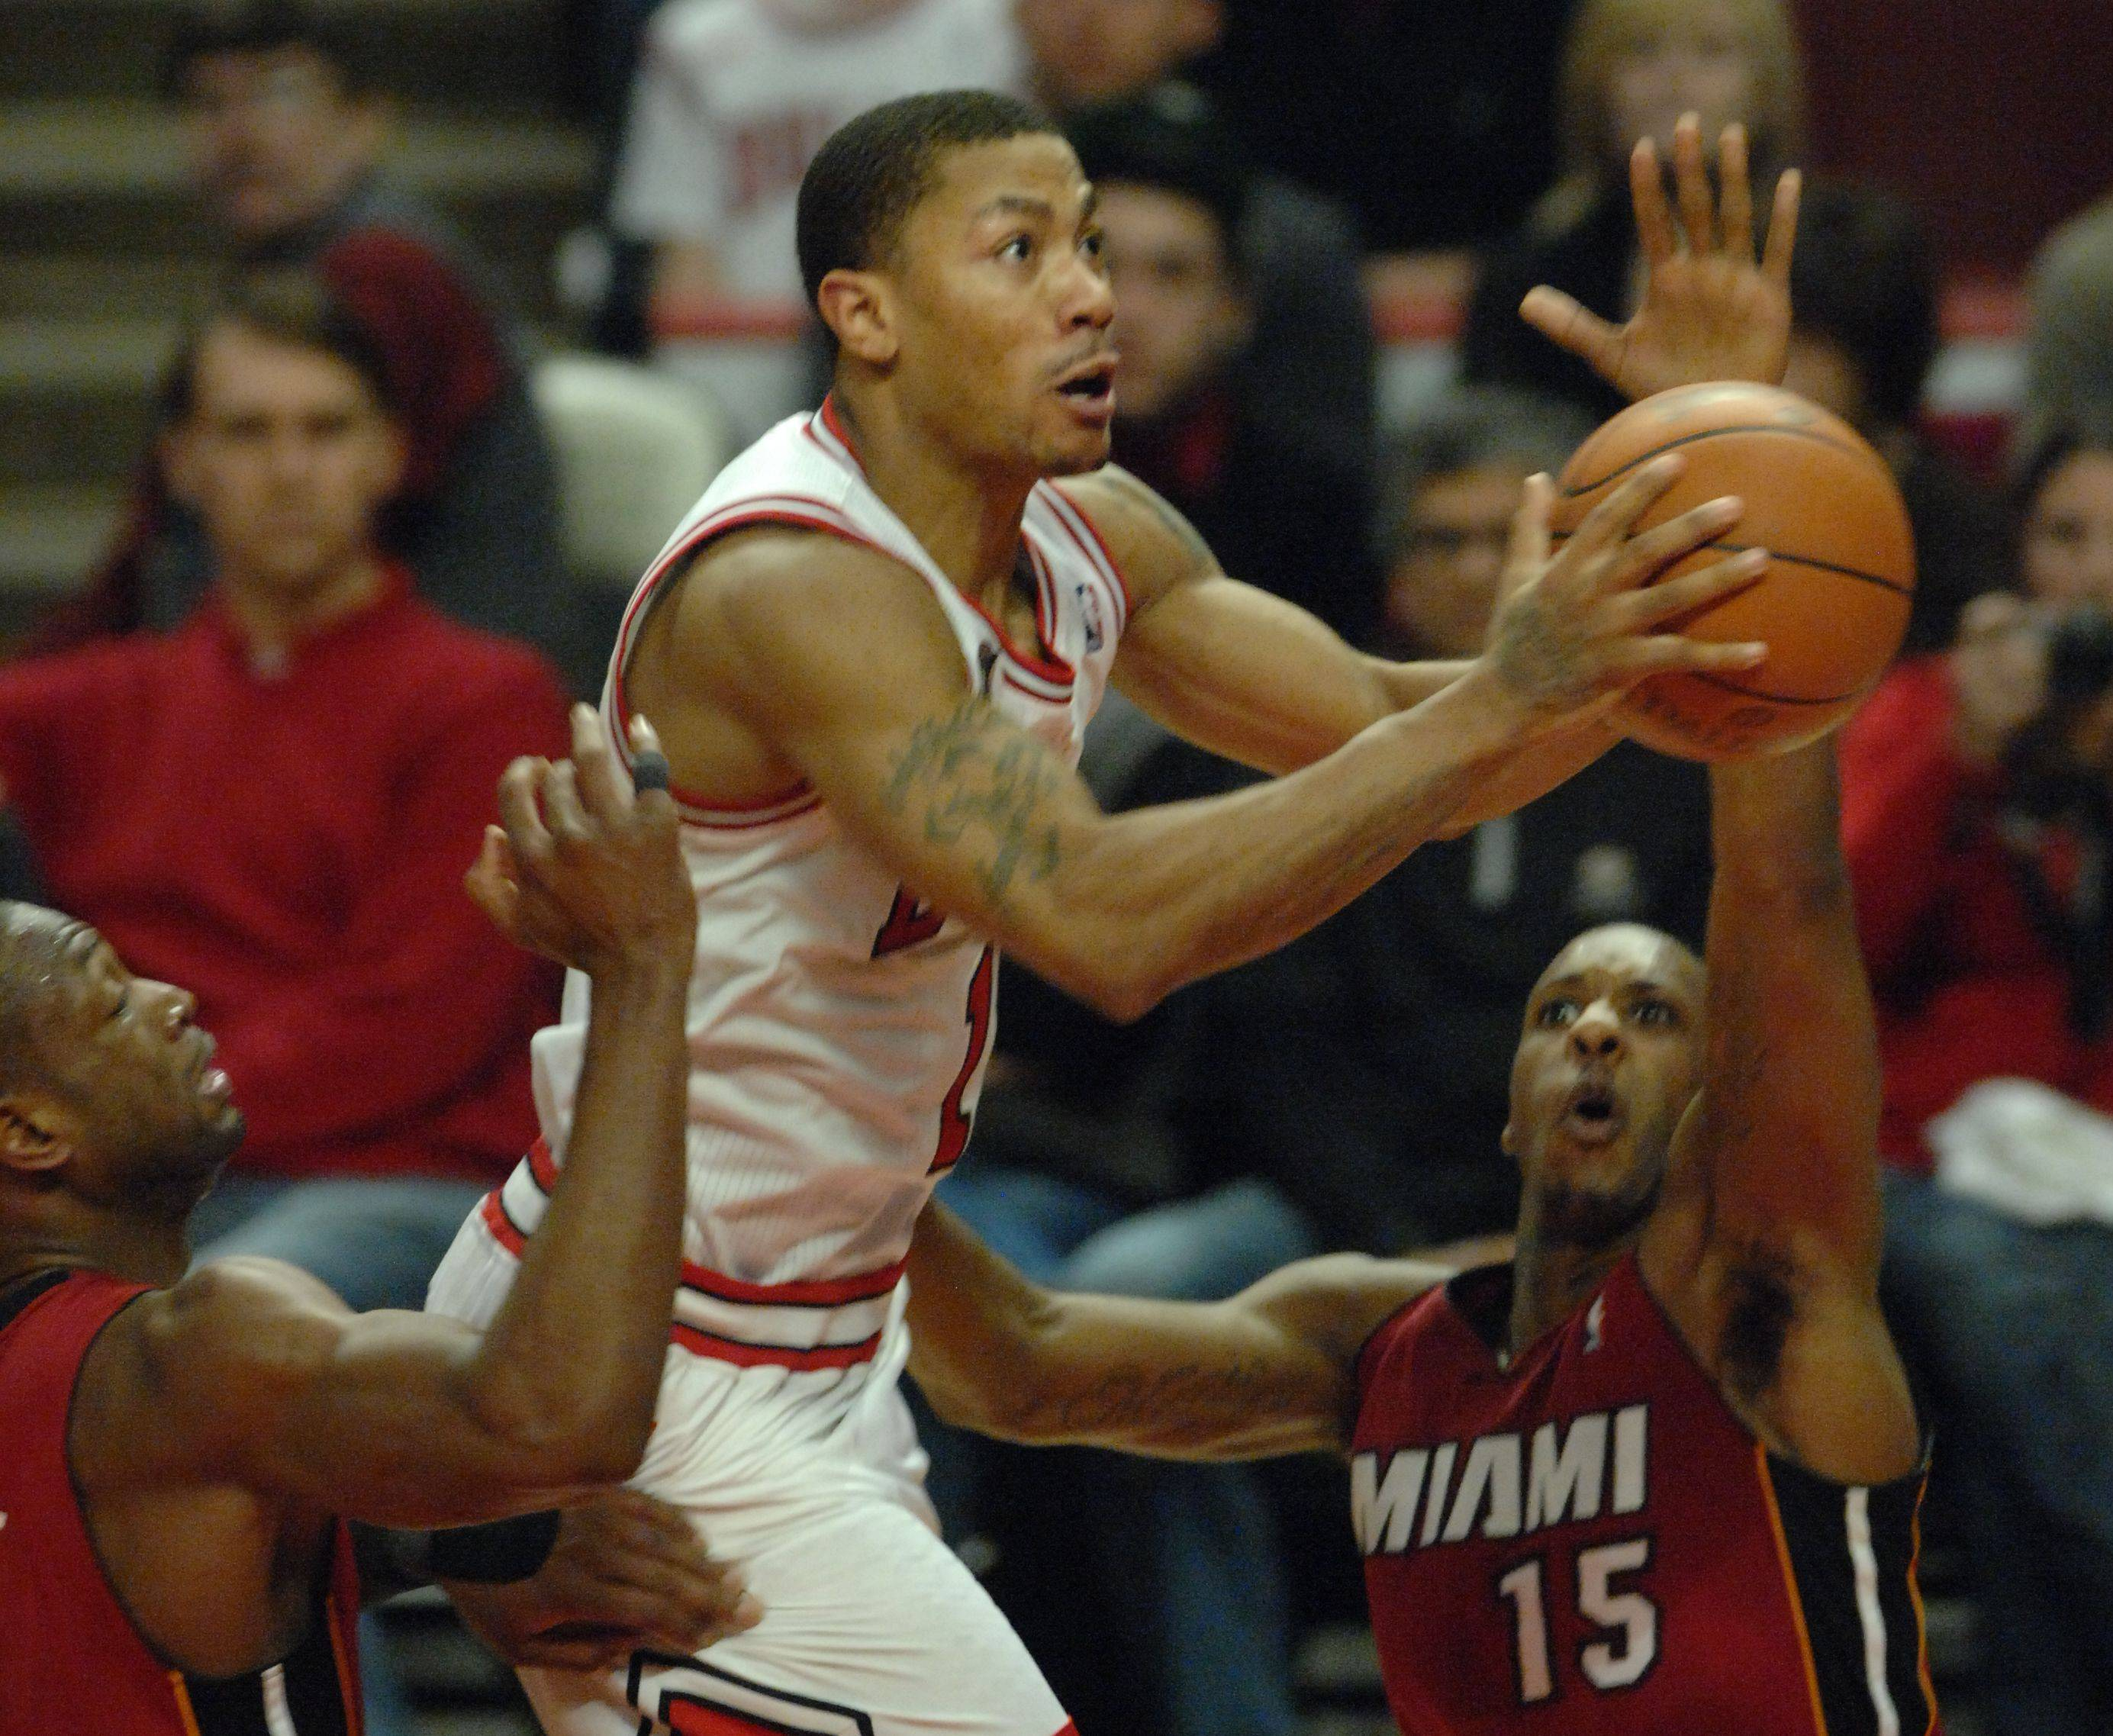 Derrick Rose drives to the basket in the fourth quarter during Saturday's game at the United Center against the Miami Heat